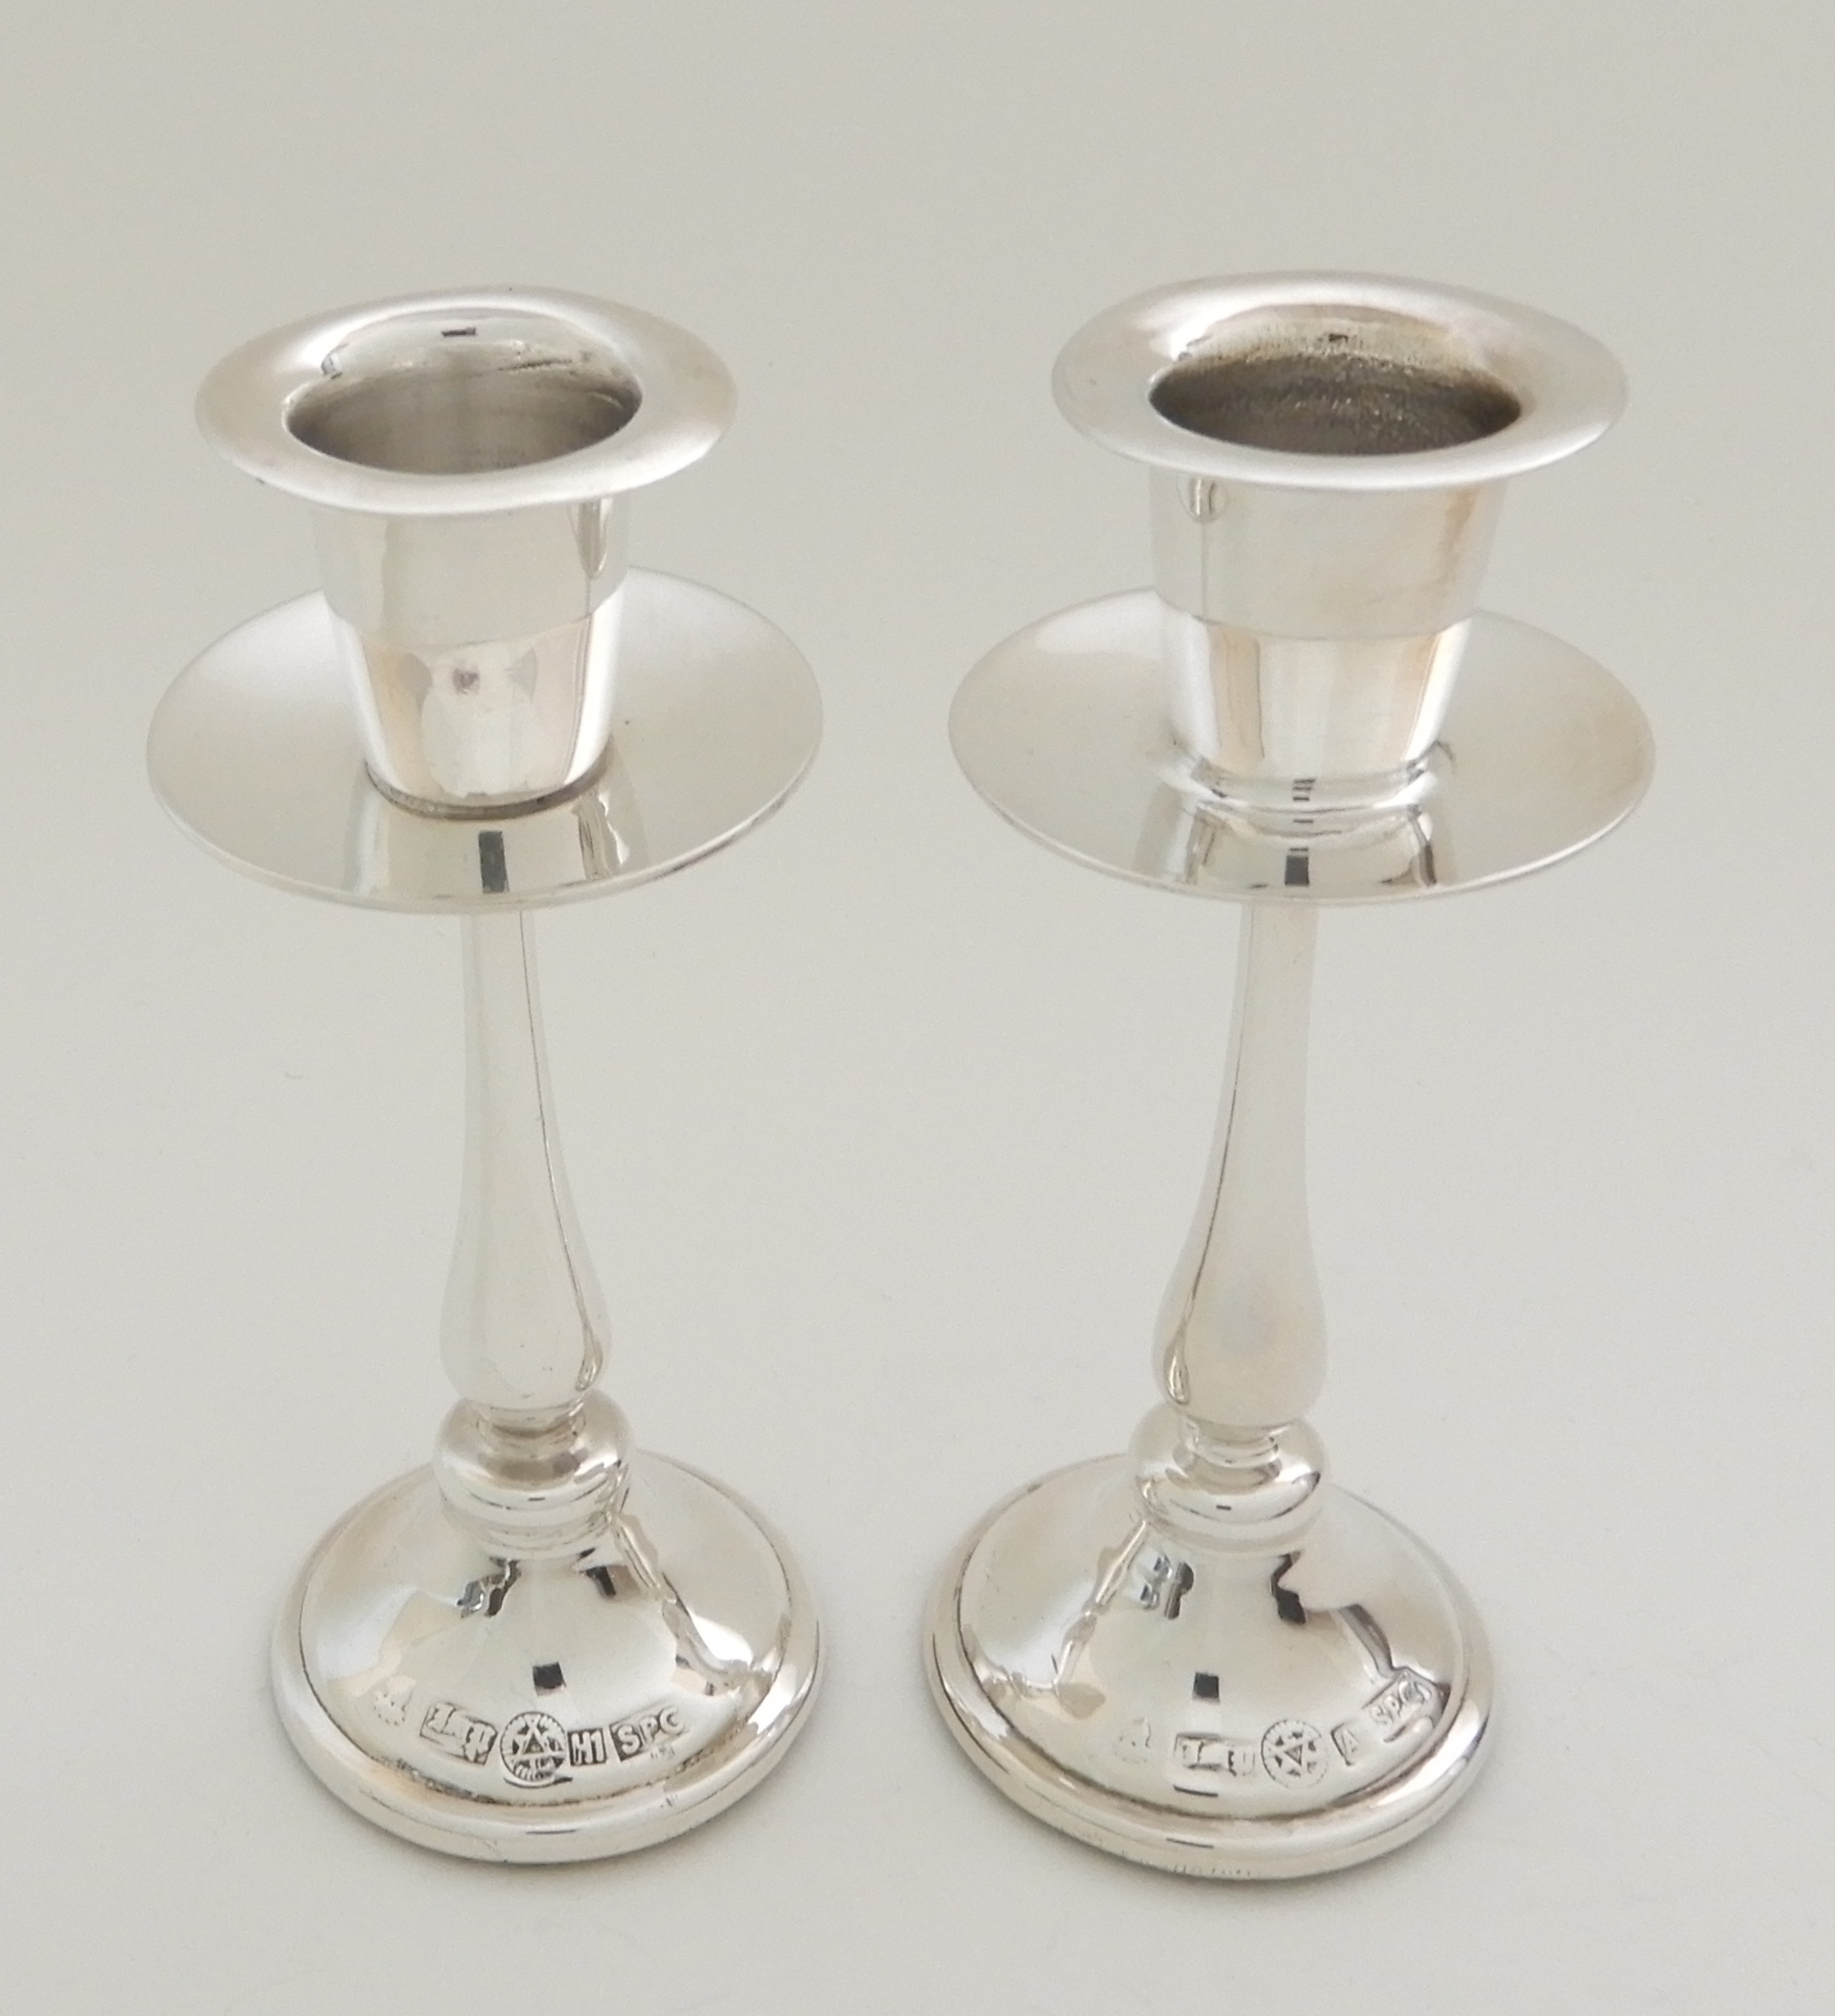 Lot 137 - A PAIR OF WHITE METAL CANDLESTICKS (POSSIBLY ISRAEL SILVER) unknown marks, with integral drip